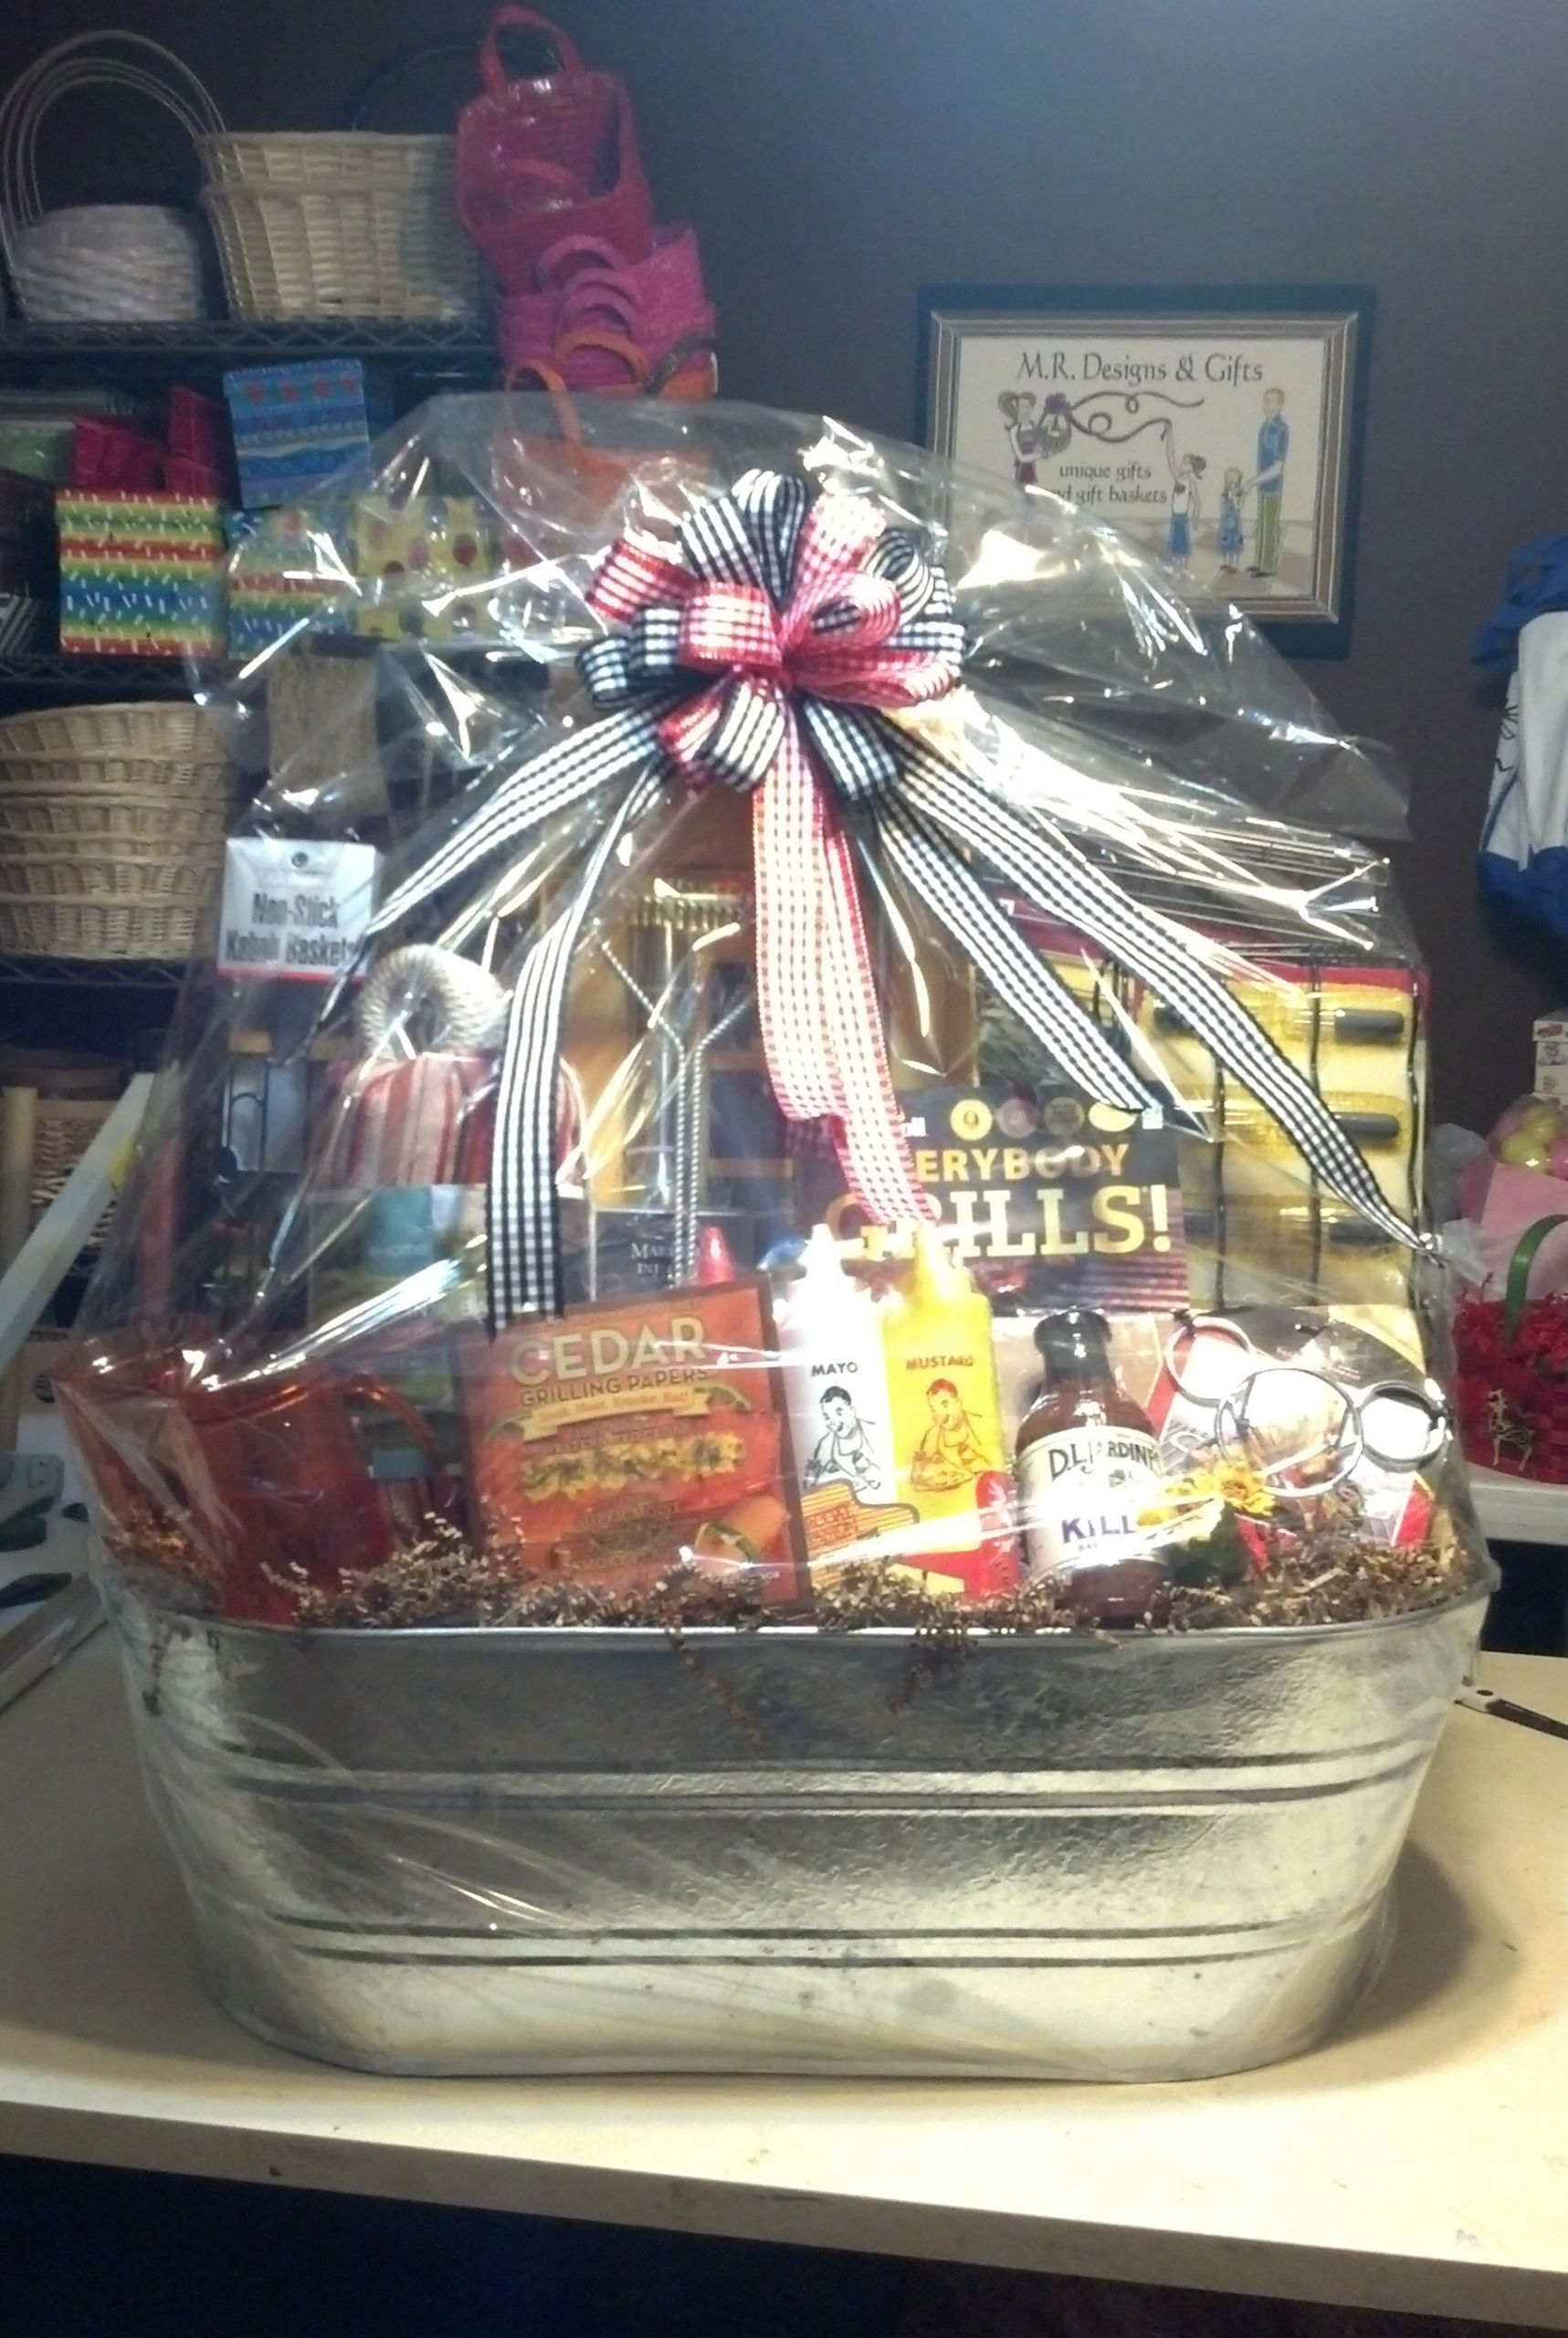 Gift Basket Ideas For Silent Auction Fundraiser  Special Event and Silent Auction Gift Basket Ideas by M R